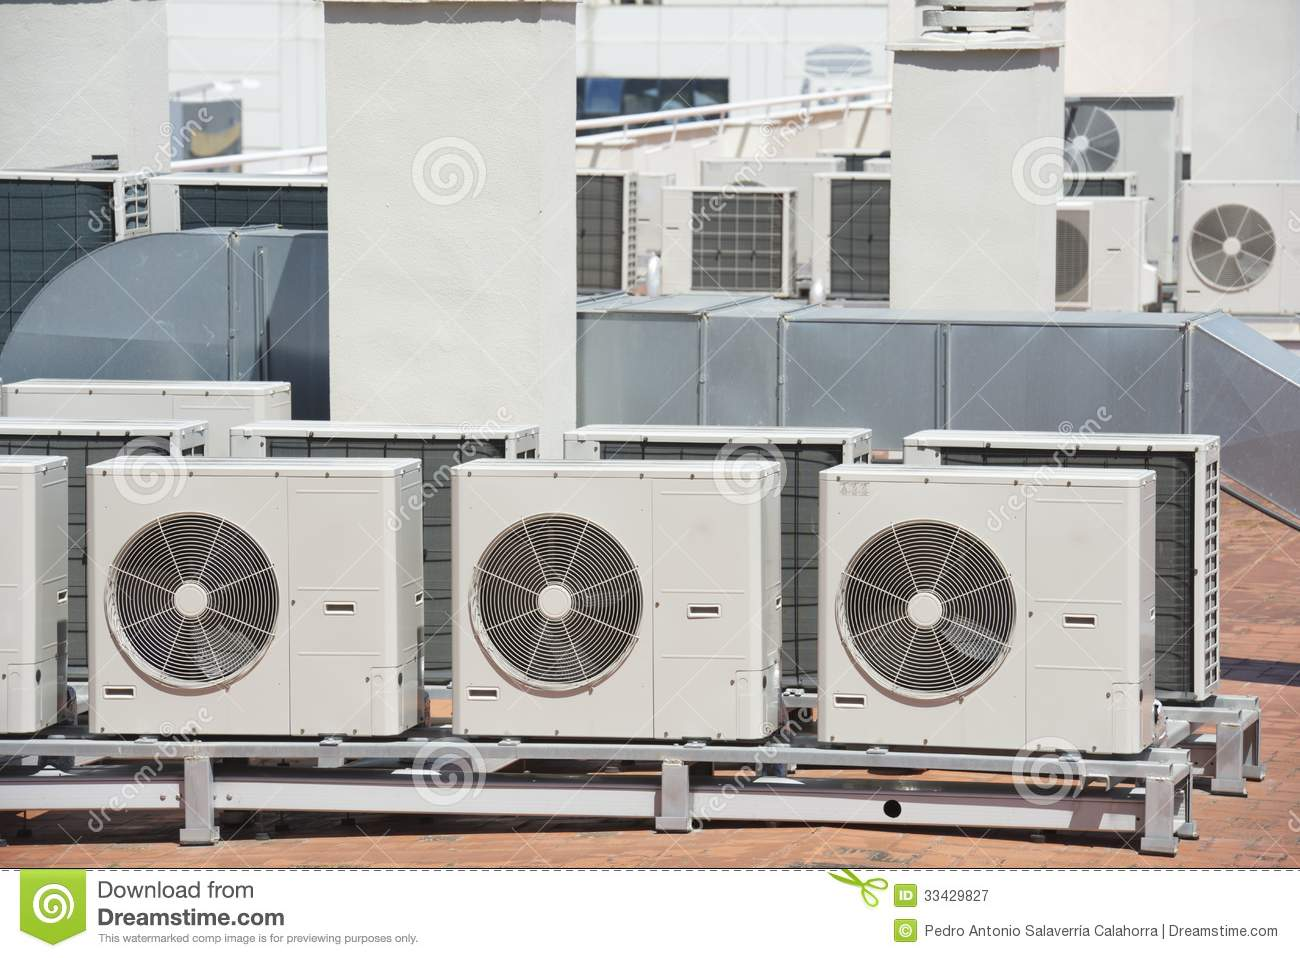 air conditioning view roof building large equipment 33429827.jpg #865C45